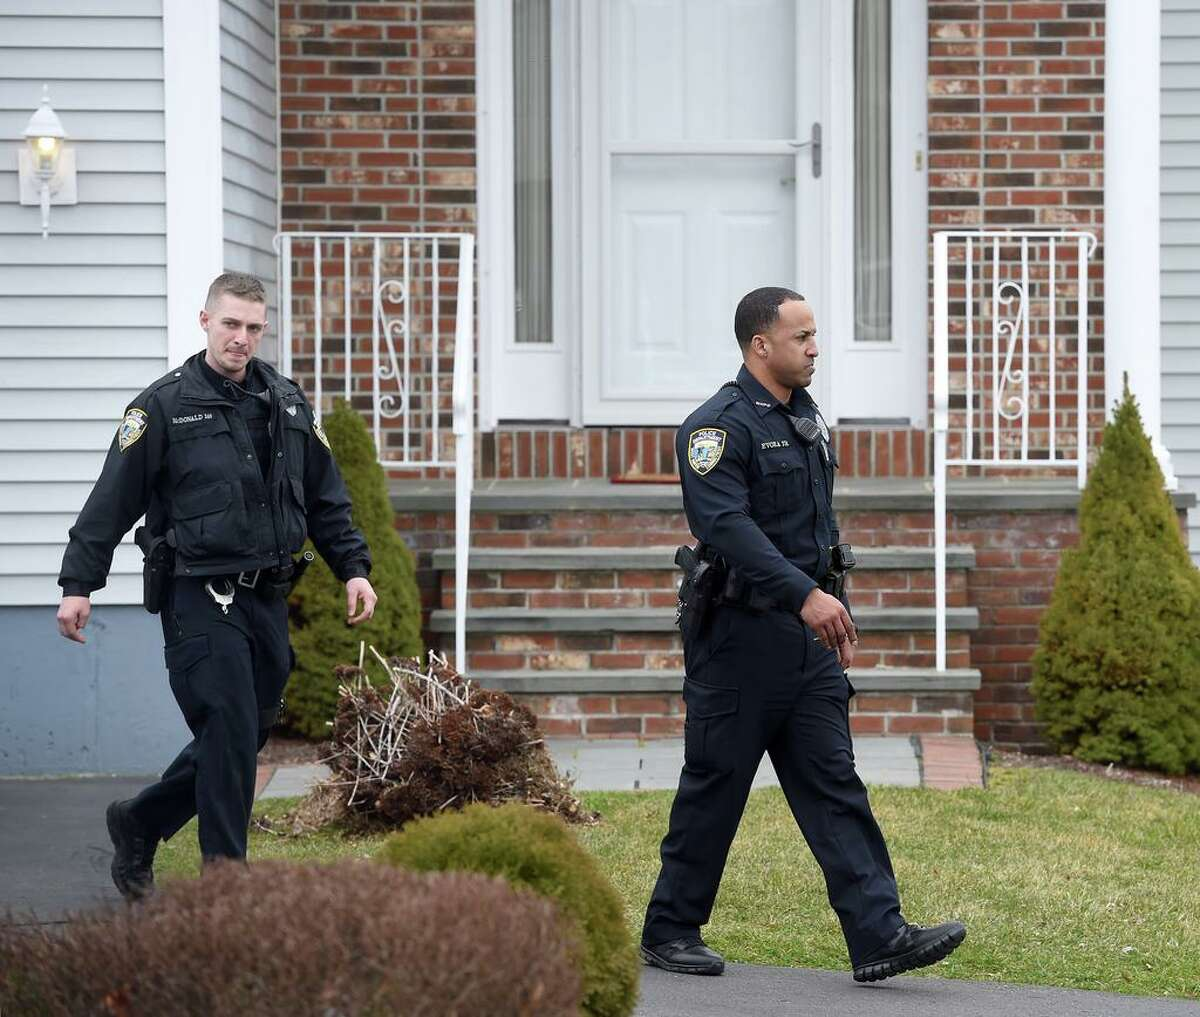 West Haven Police were at the home of former West Haven High School Athletic Director Jon Capone at 326 Benham Hill Road in West Haven removing items on March 11, 2020.